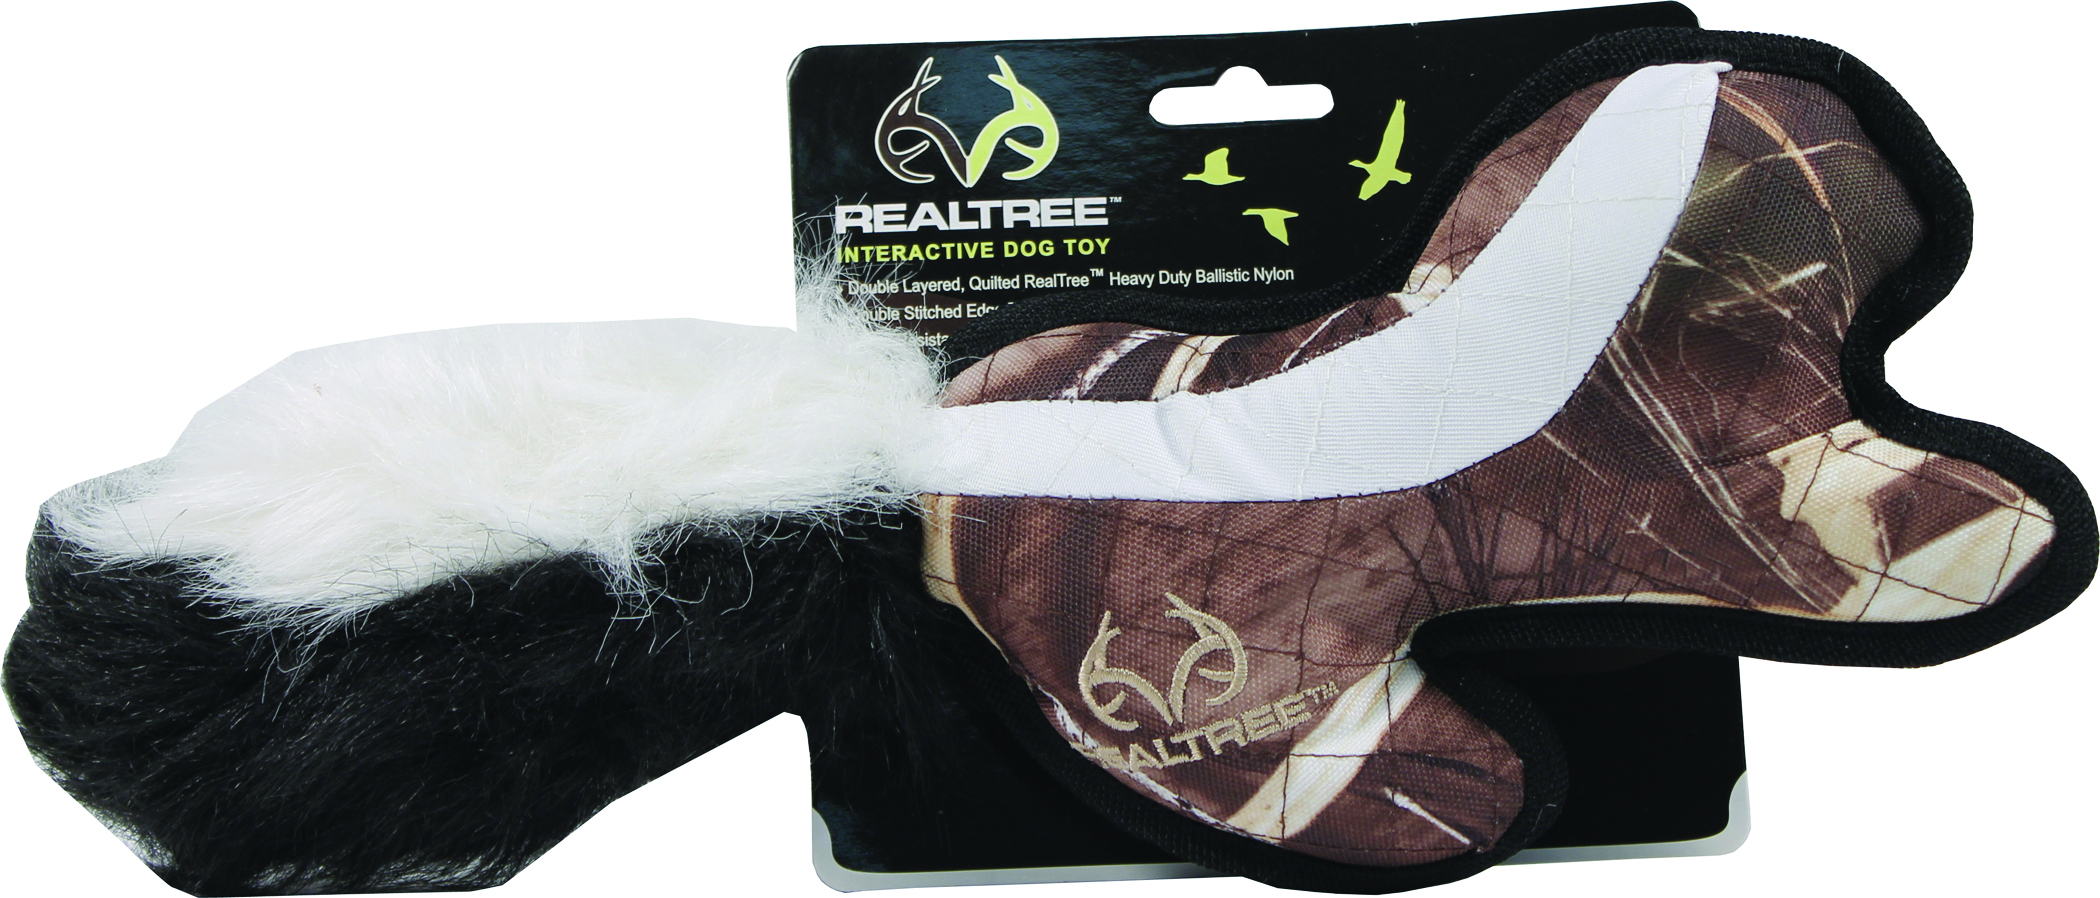 Hyper Pet Realtree Skunk Dog Toy